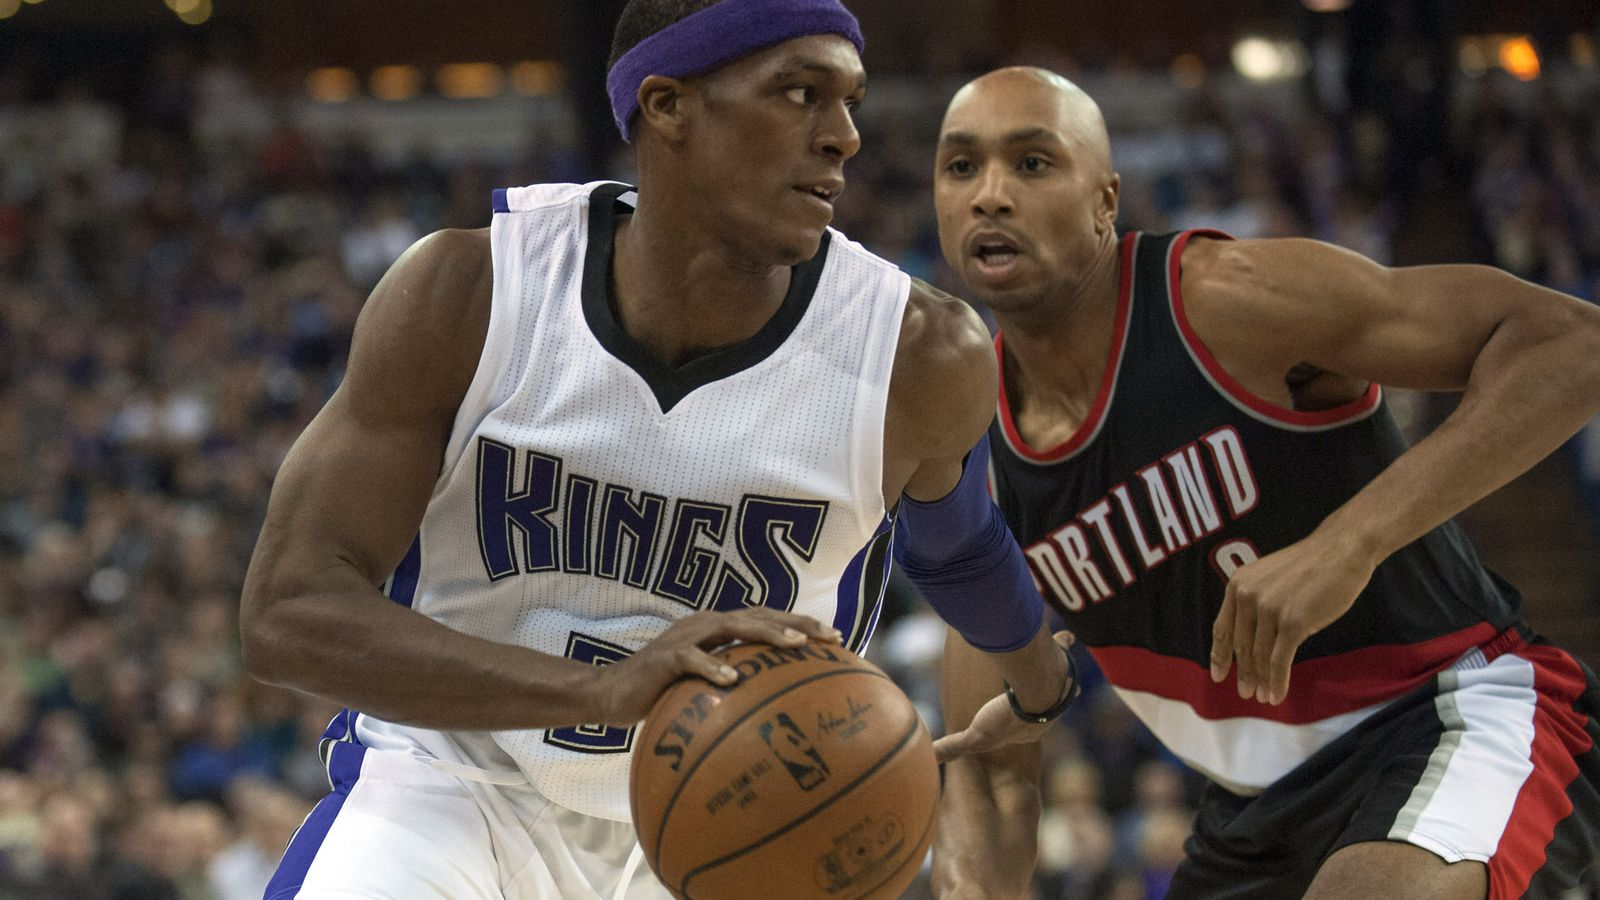 Rajon Rondo With The Beautiful Behind-the-back Assist